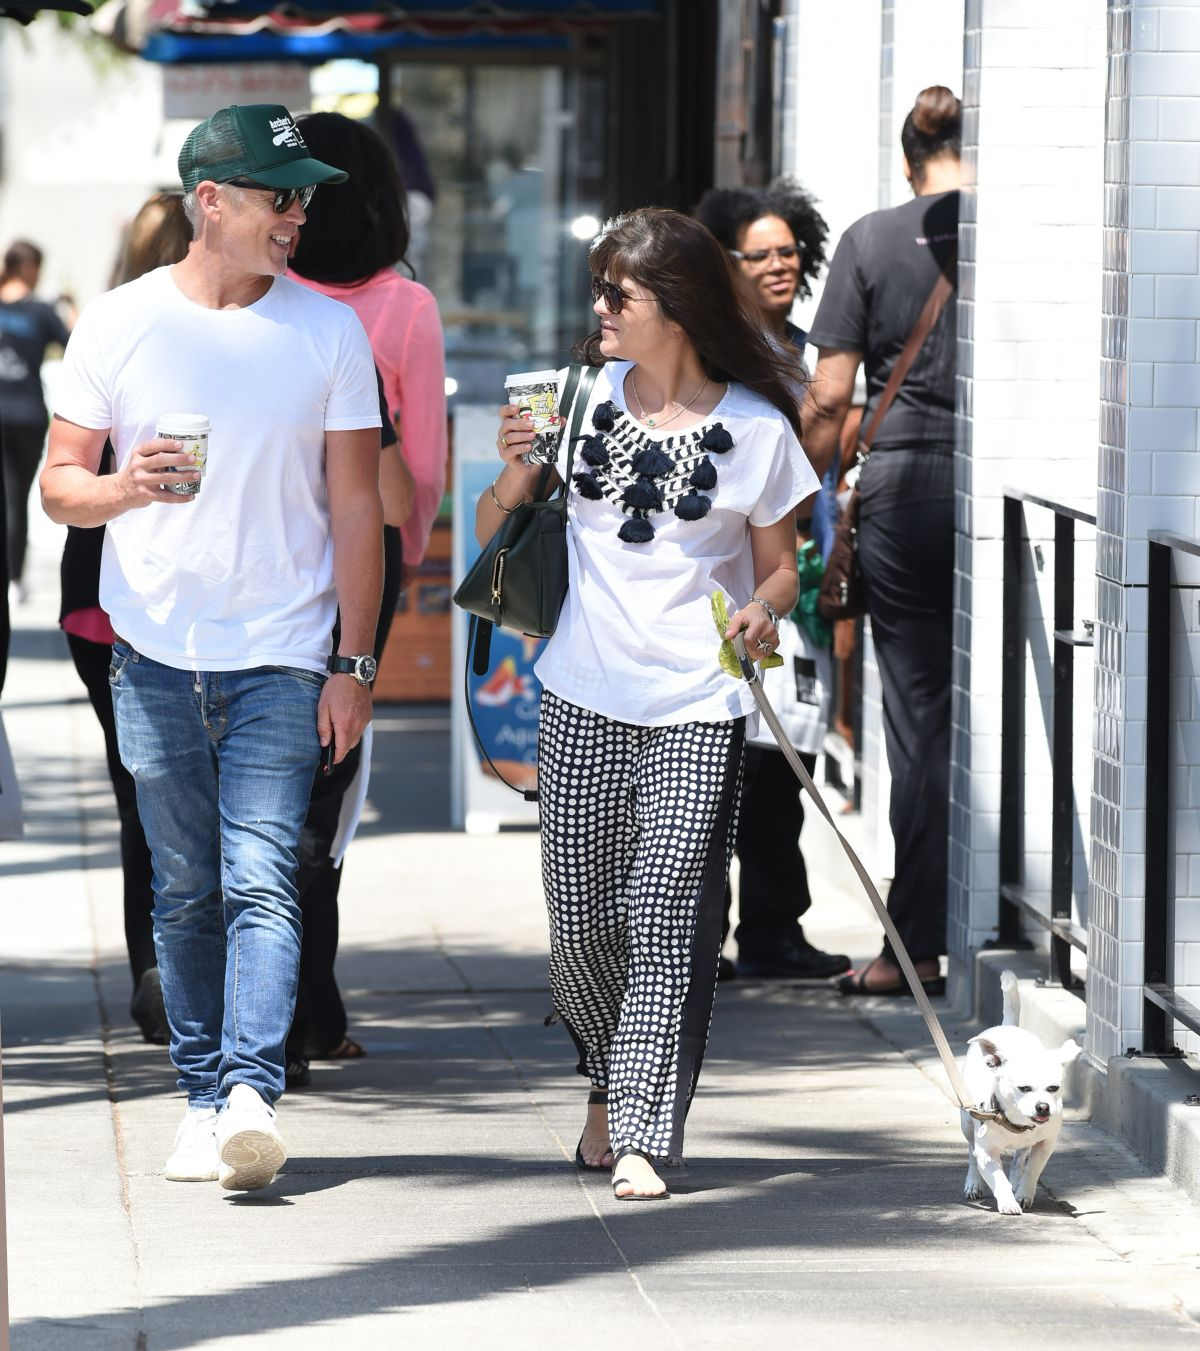 Selma Blair Out with her dog in LA   selma-blair-out-with-her-dog-in-la-_8